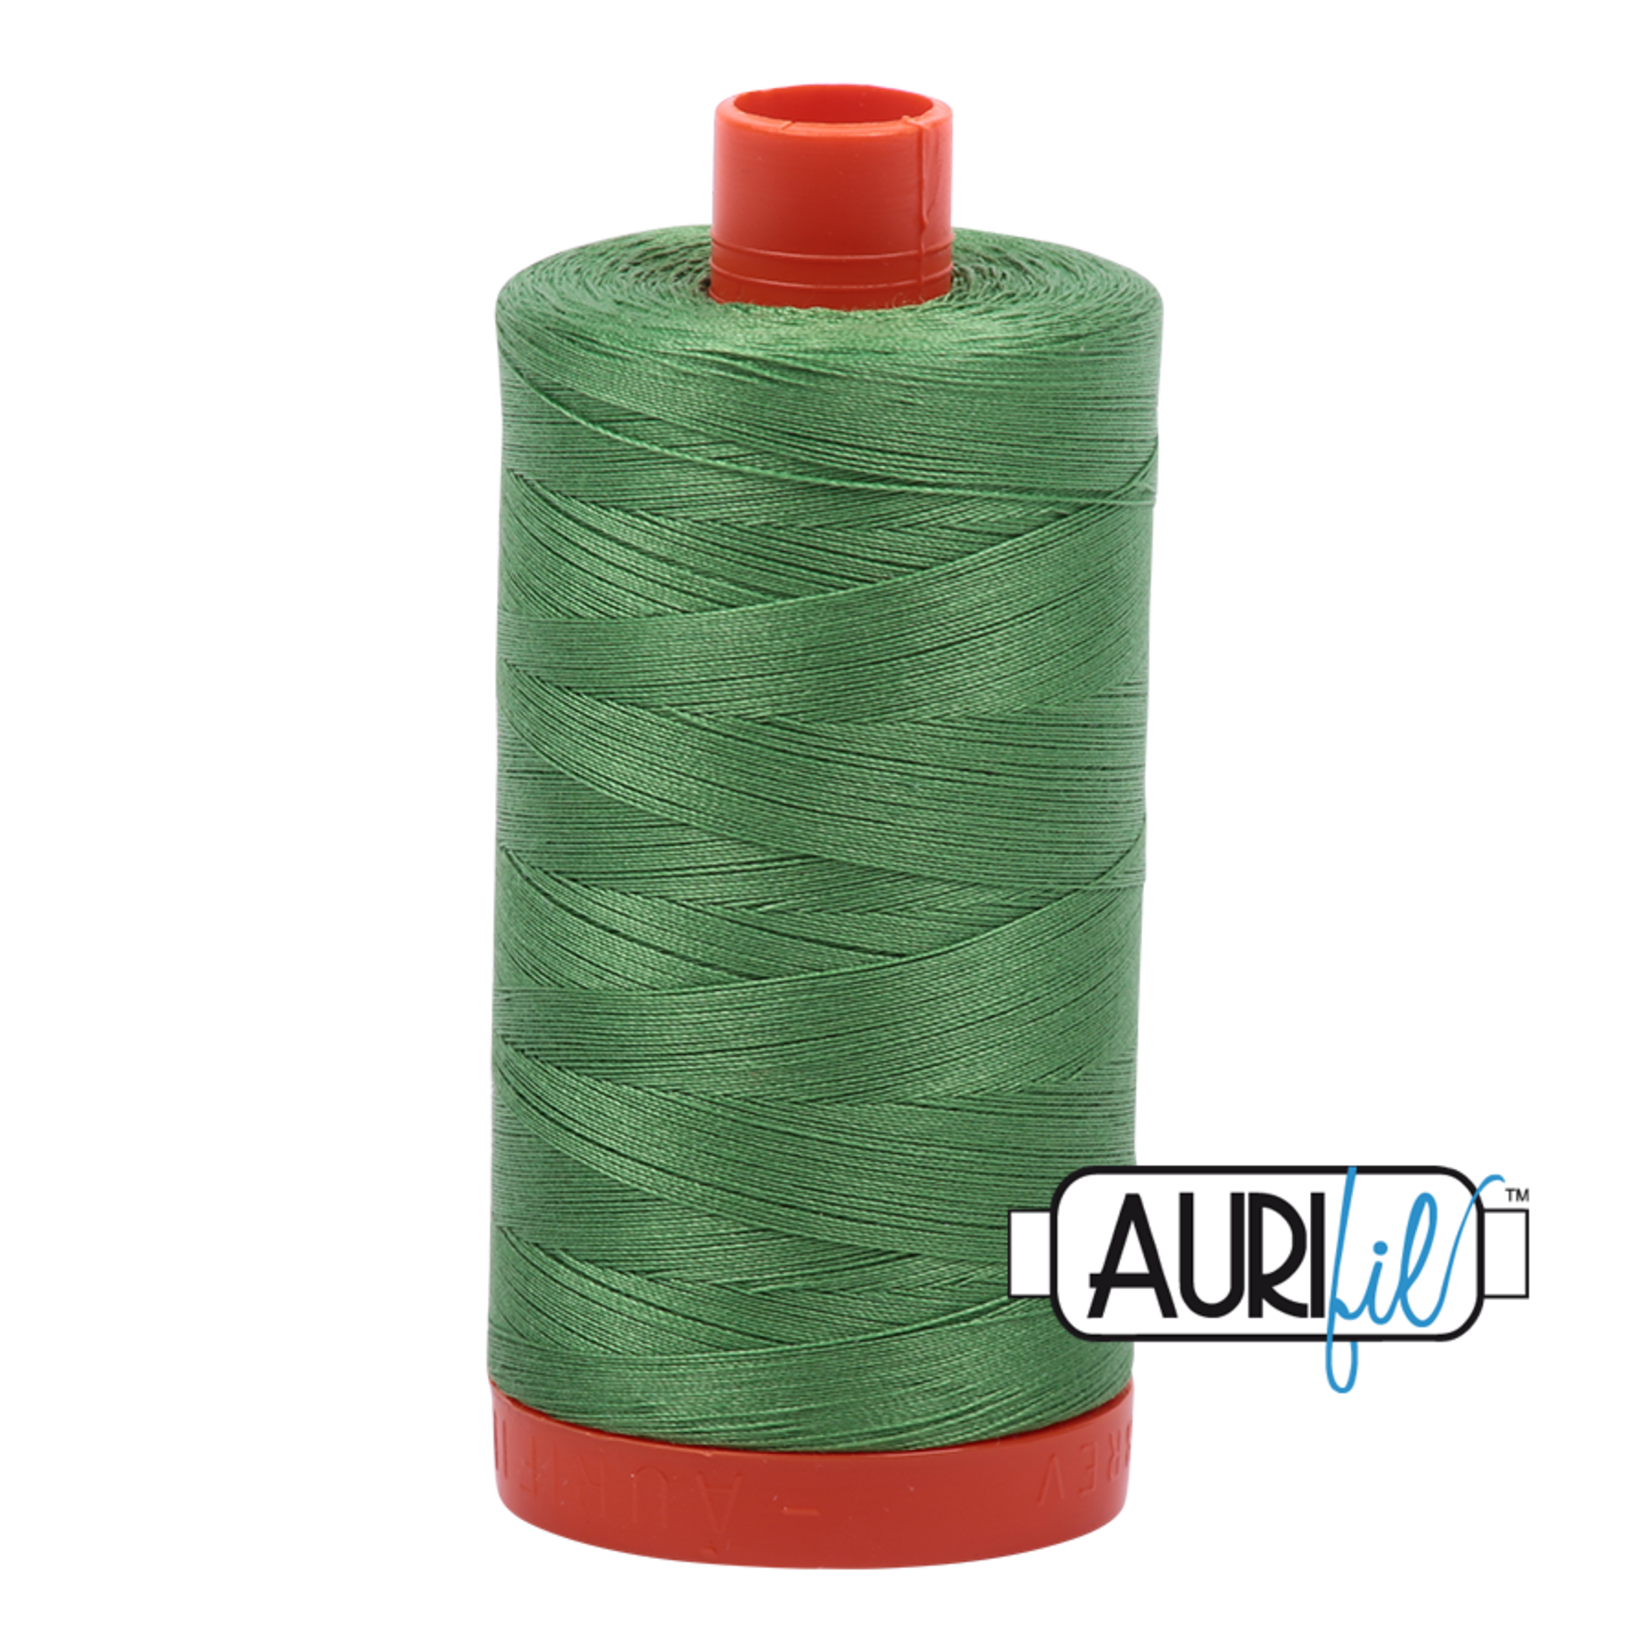 AURIFIL AURIFIL 50 WT Green Yellow 2884